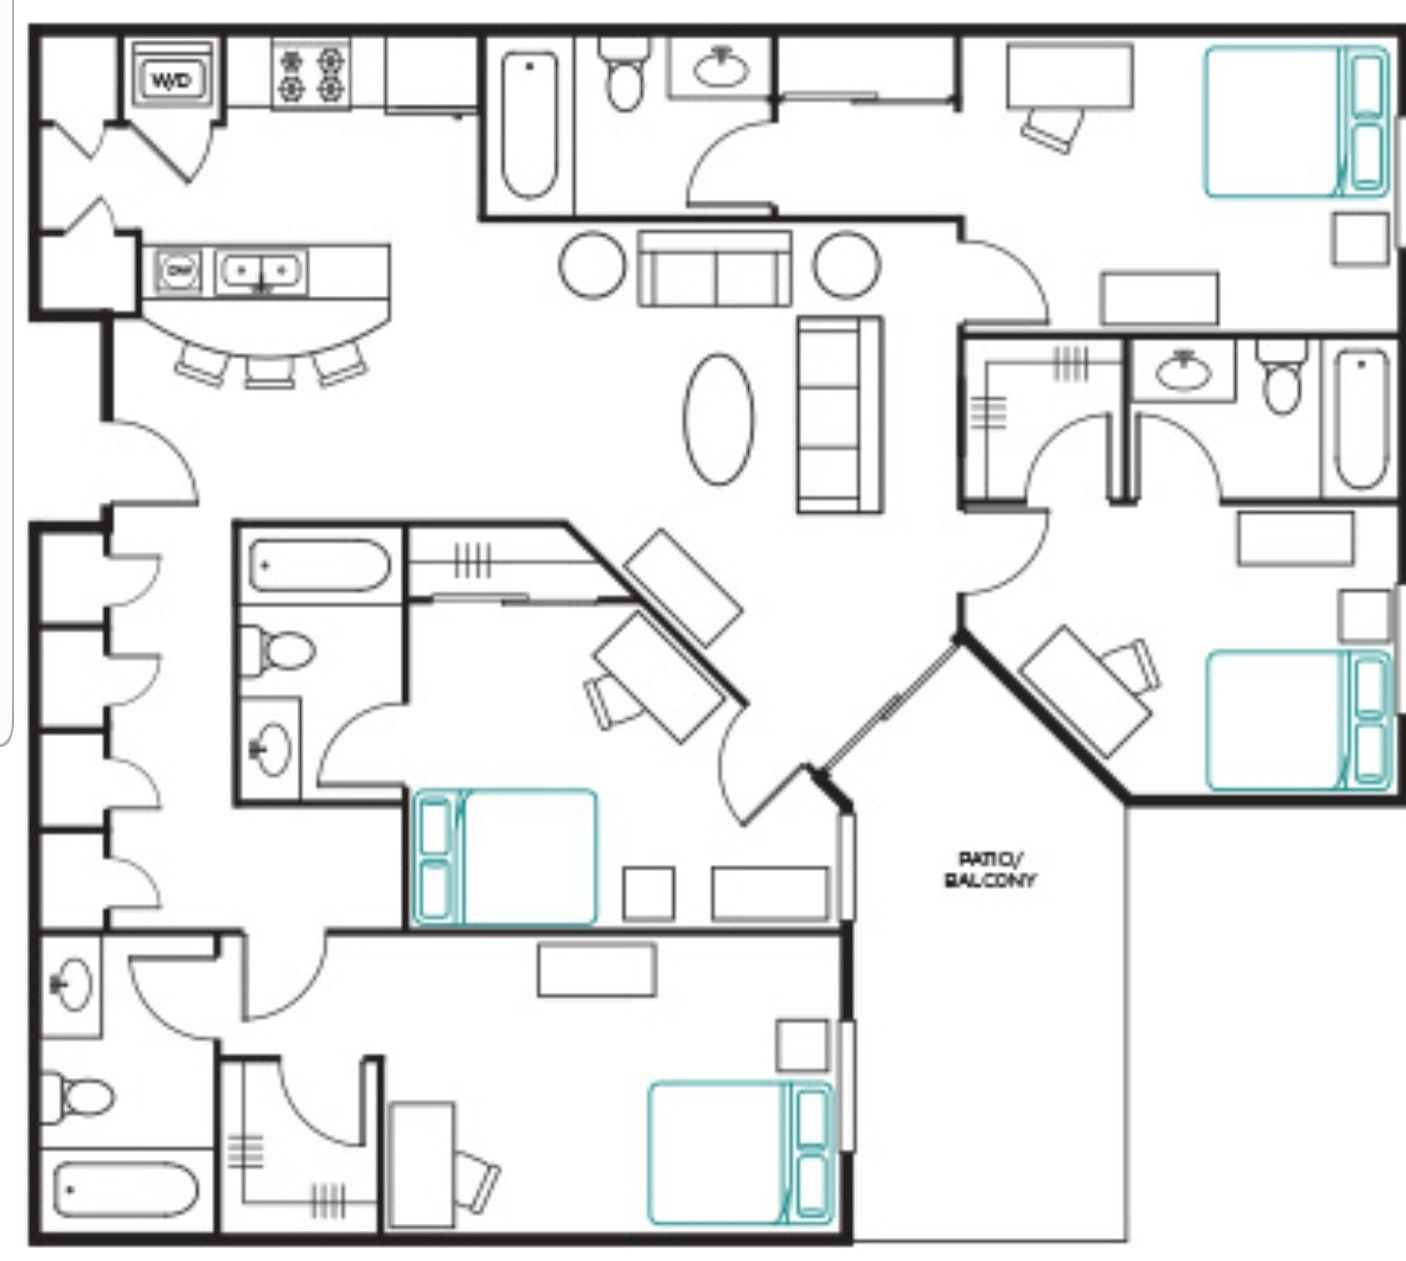 Save over $180 per month for an ASU apartment room with private bathroom